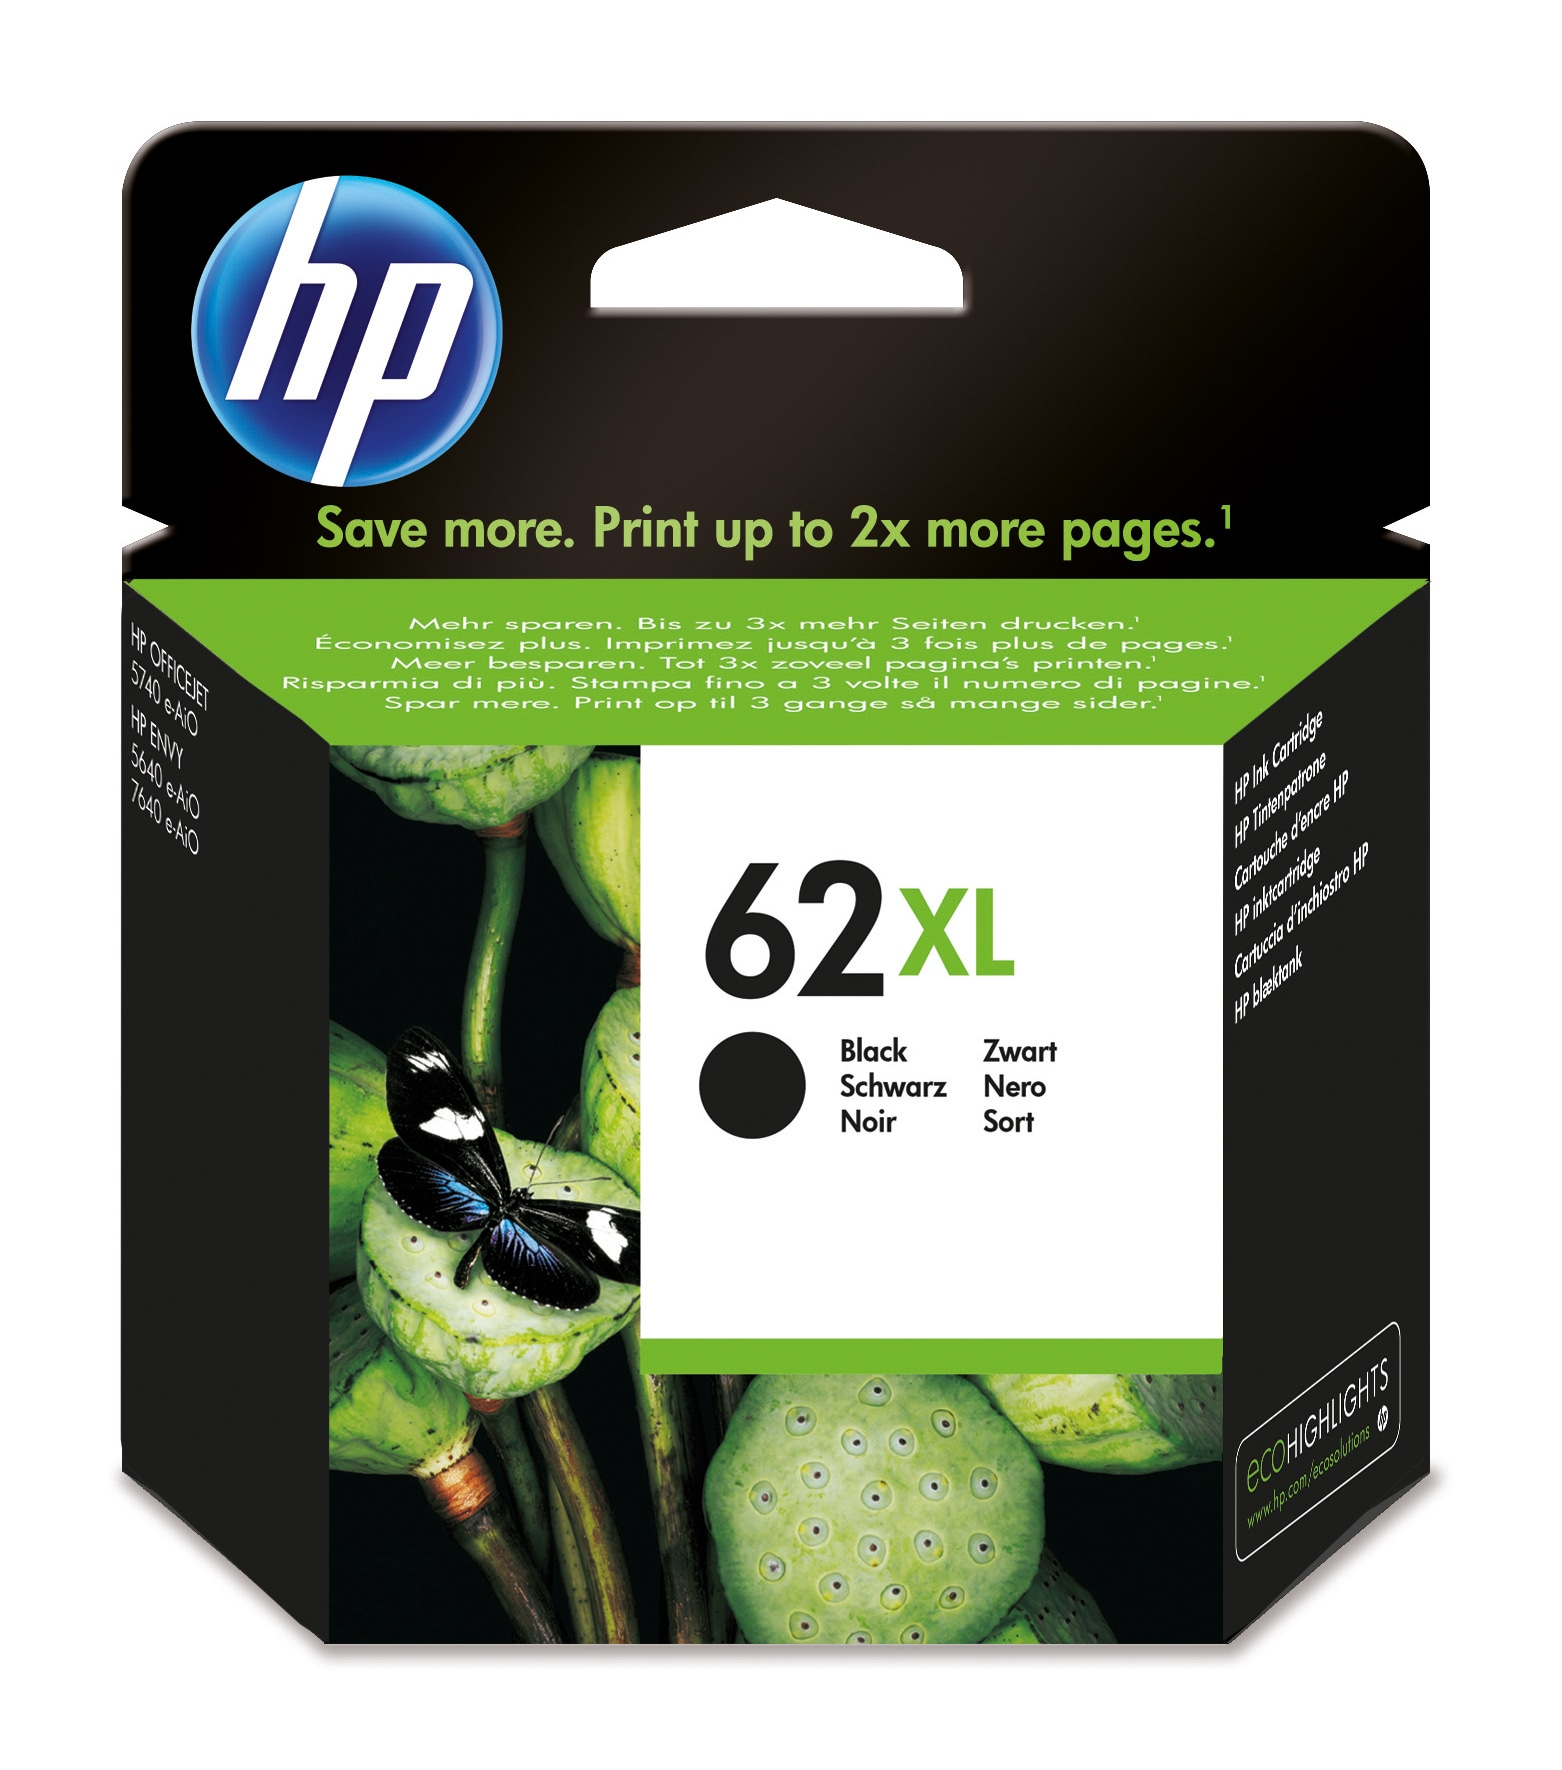 HP 62XL - C2P05AE - 1 X Black - Ink Cartridge - High Yield - For Envy 5640, 5644, 5646, 5660, 7640, Officejet 5740, 5742, 8040 With Neat C2P05AE#UUS - C2000